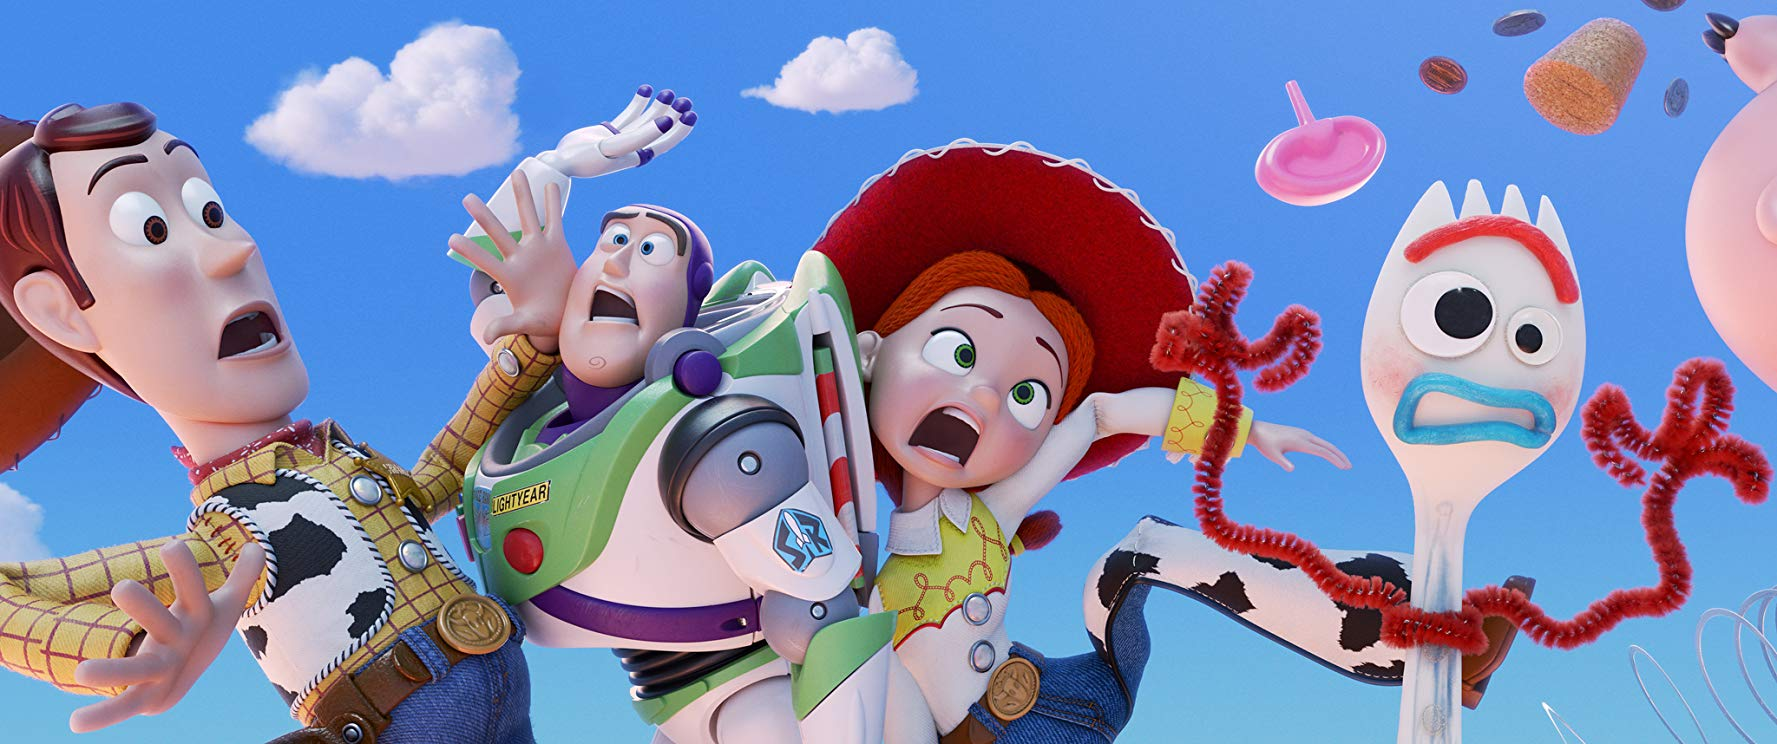 Toy Story 4 - dubbing